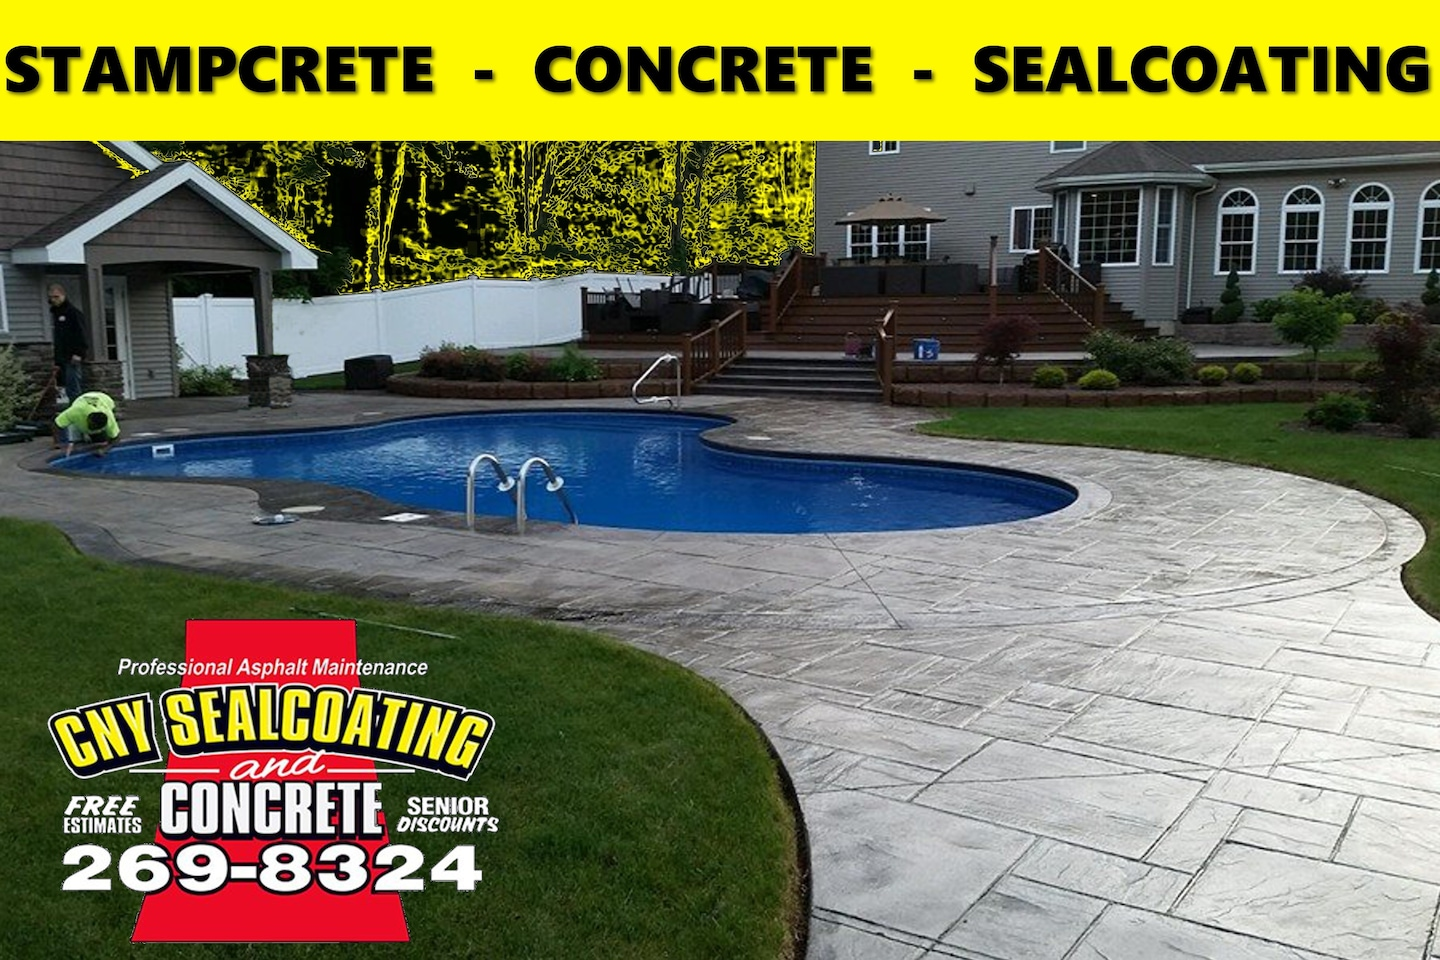 CNY Sealcoating & Concrete